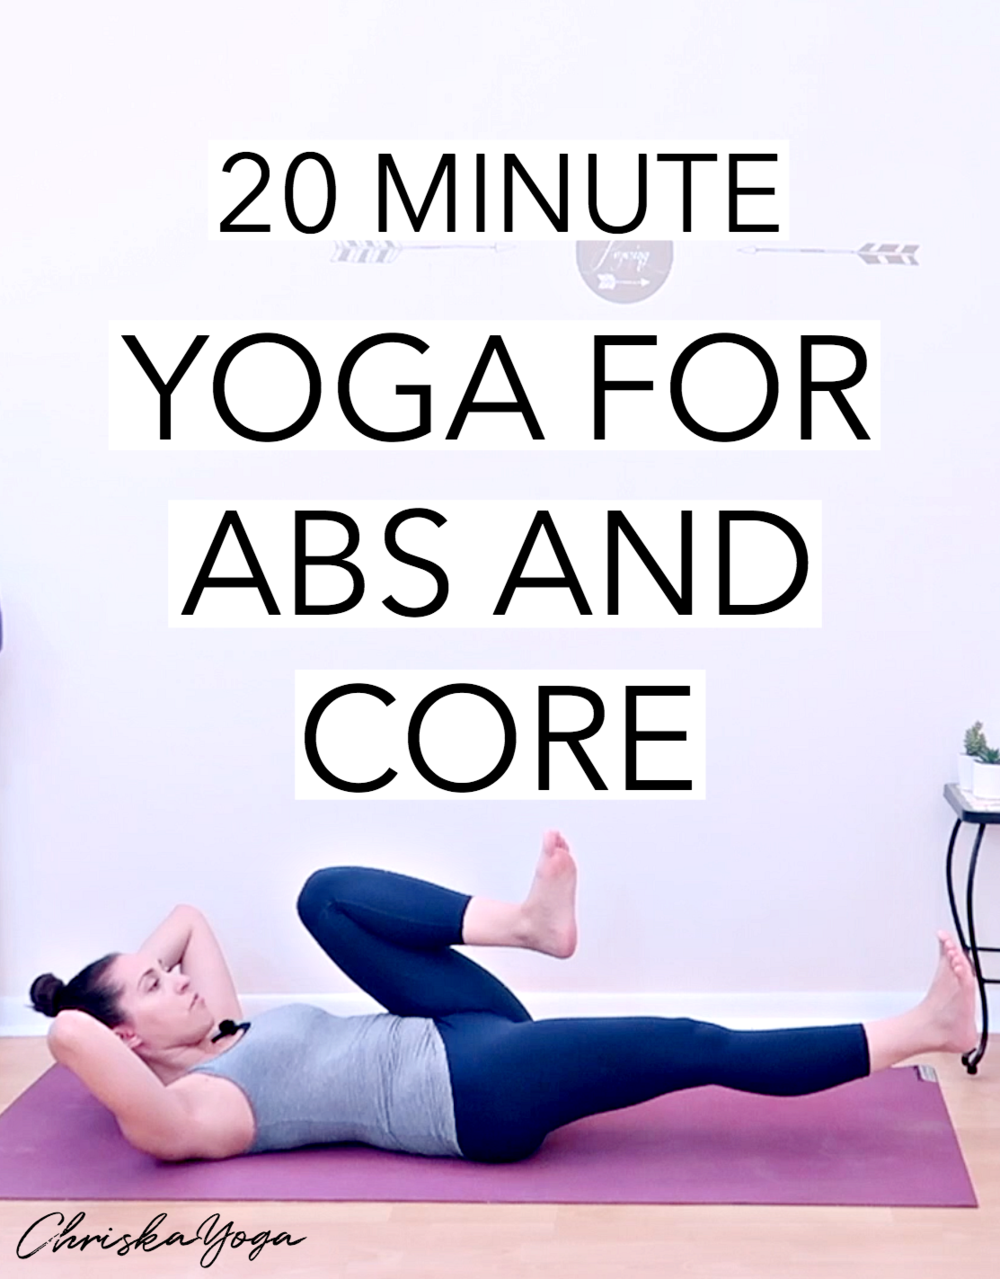 Yoga for Abs and Core - 20 minute at home yoga class for abs and core workout